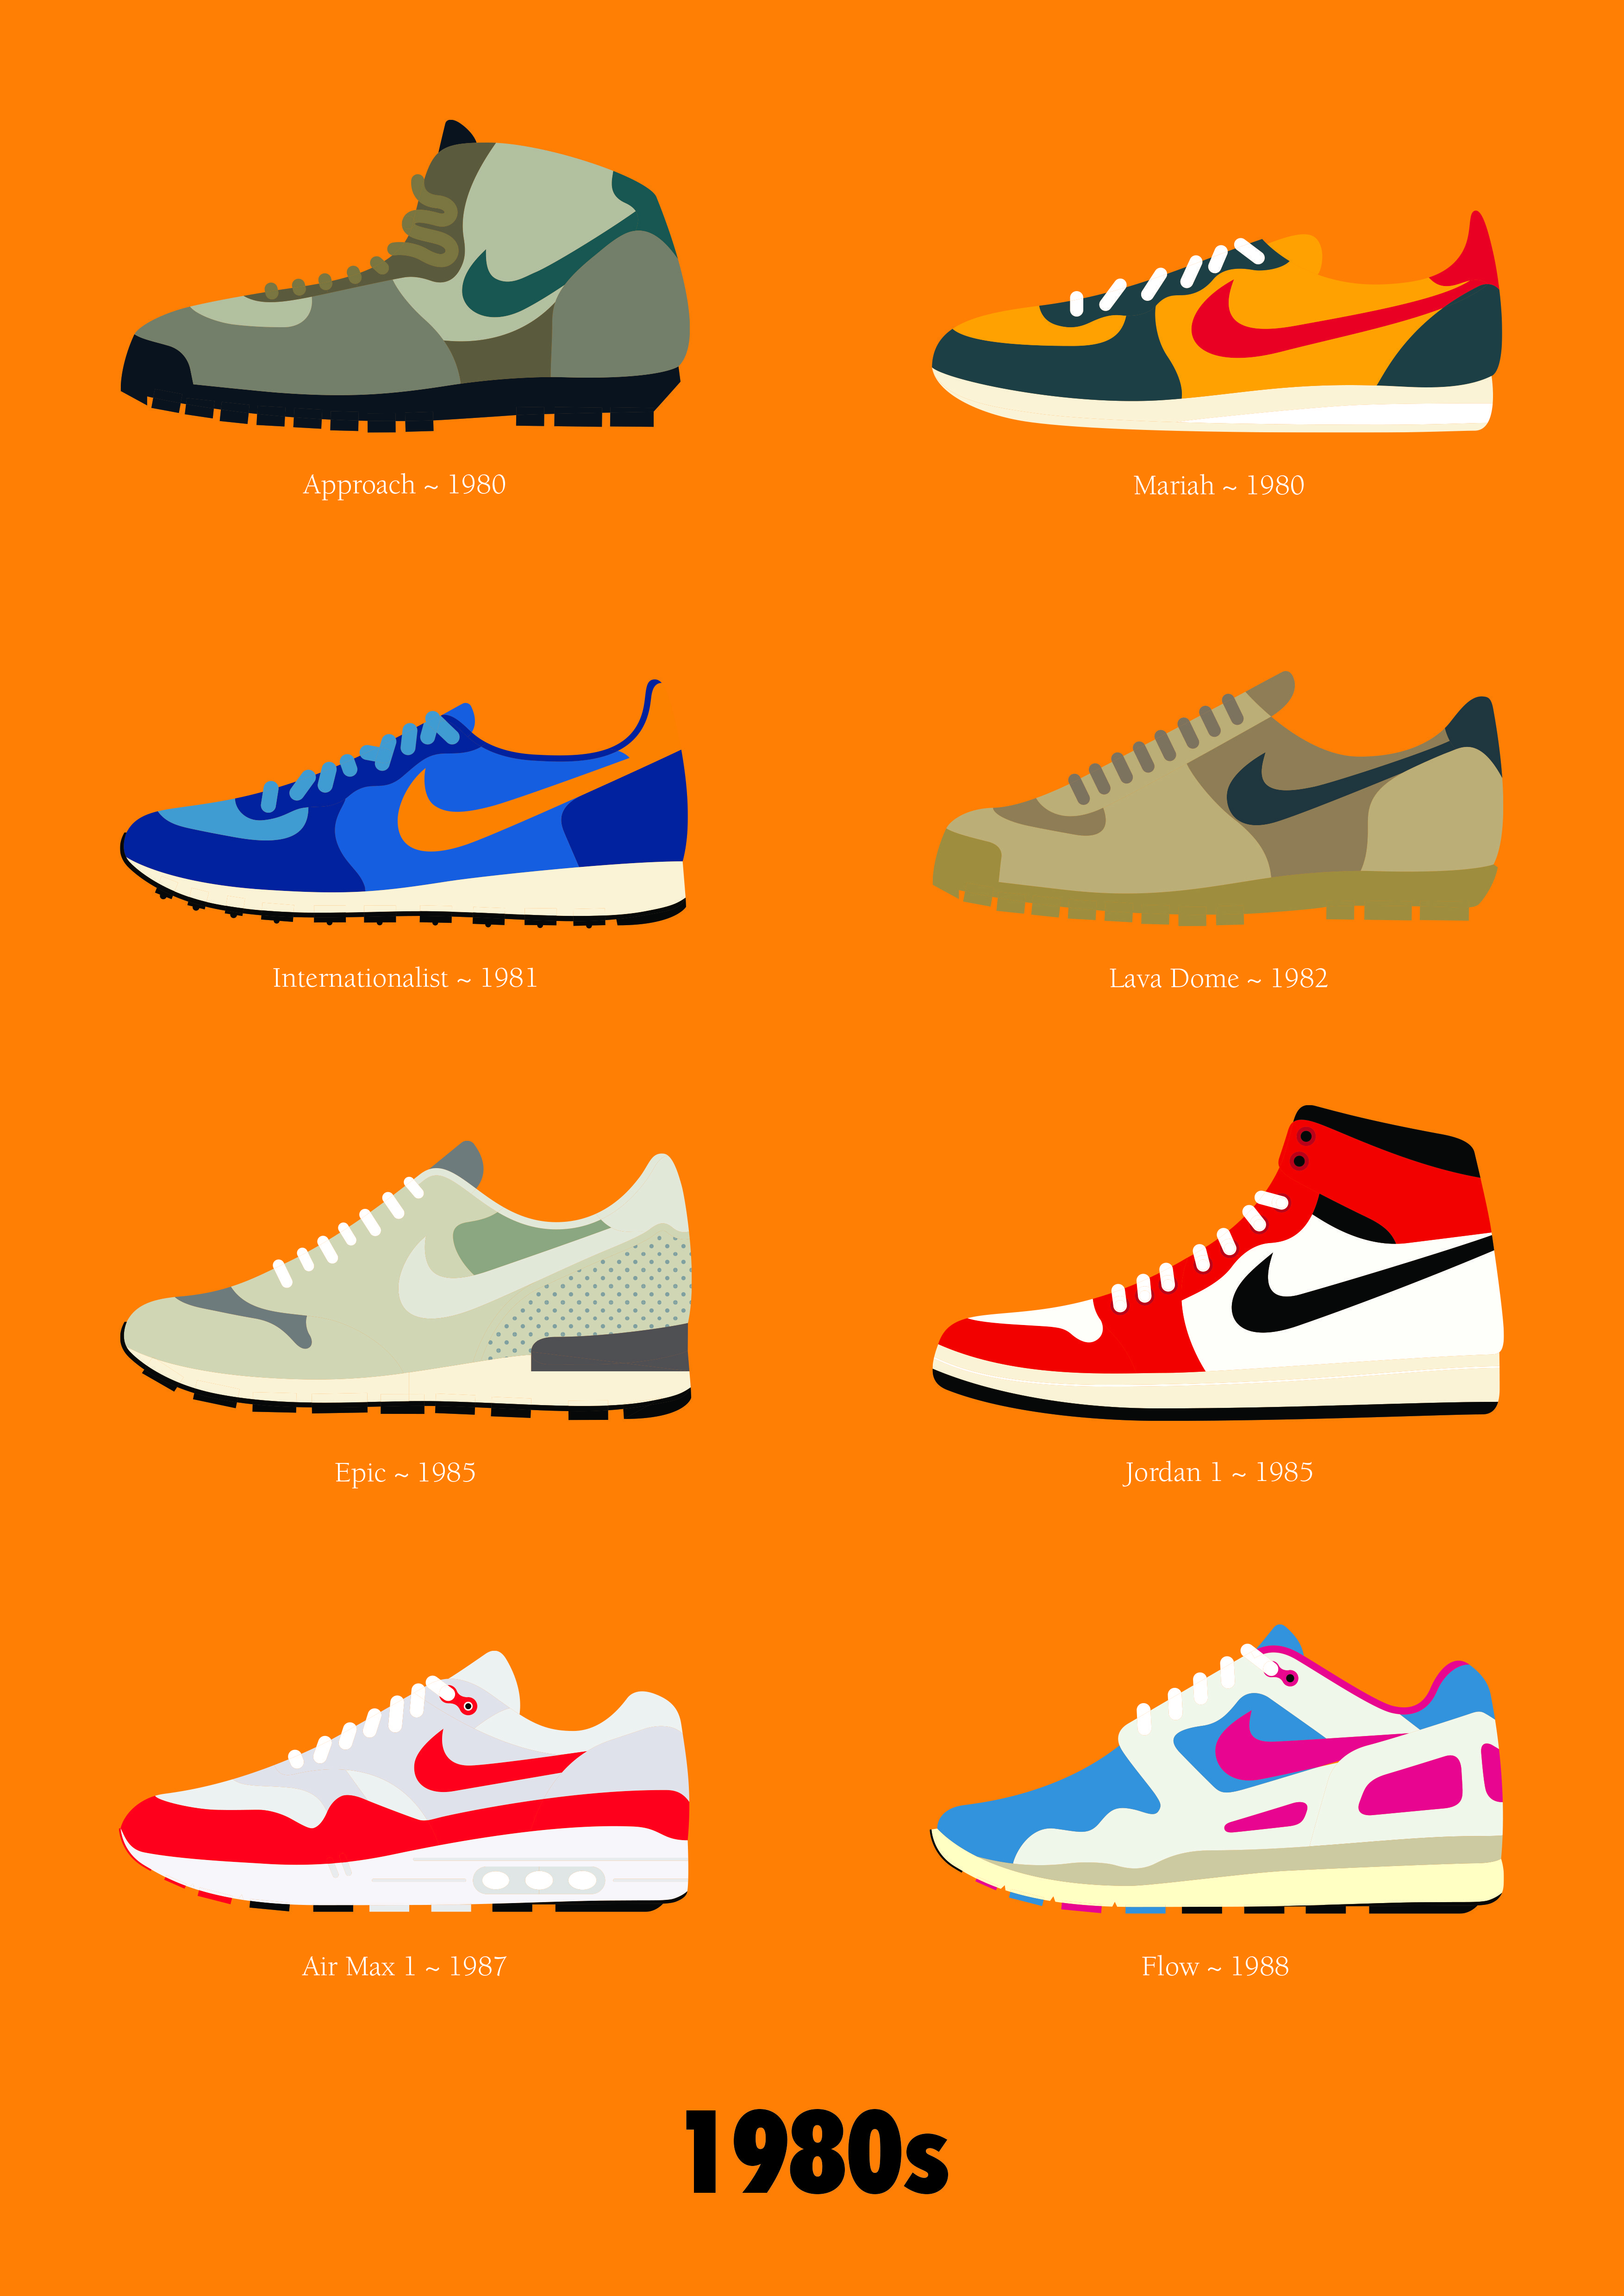 Bottom right is a cool neon colour palette for the nike